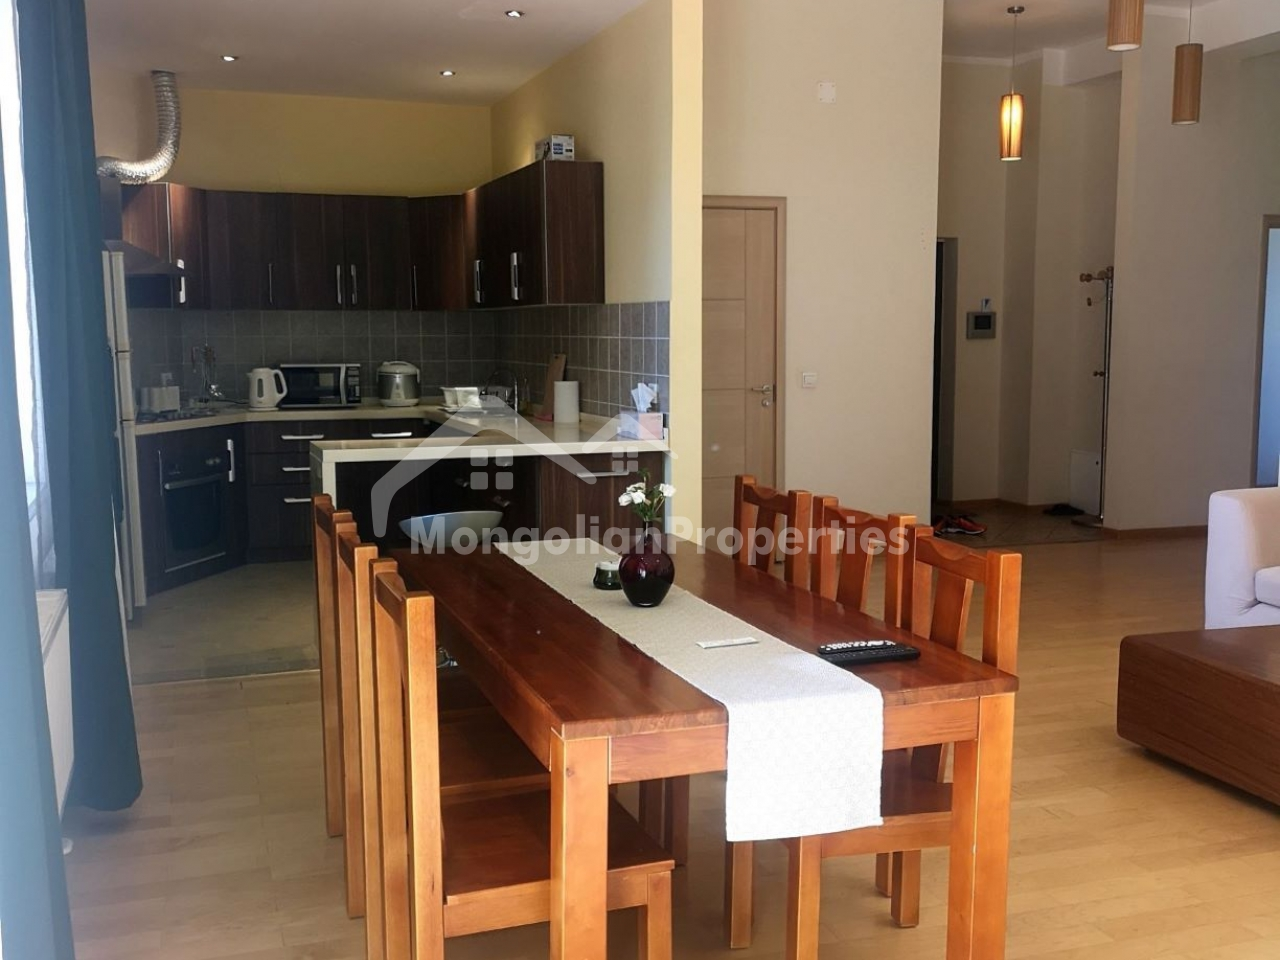 3 bedroom apartment for rent in Regency Residence, in Embassy area